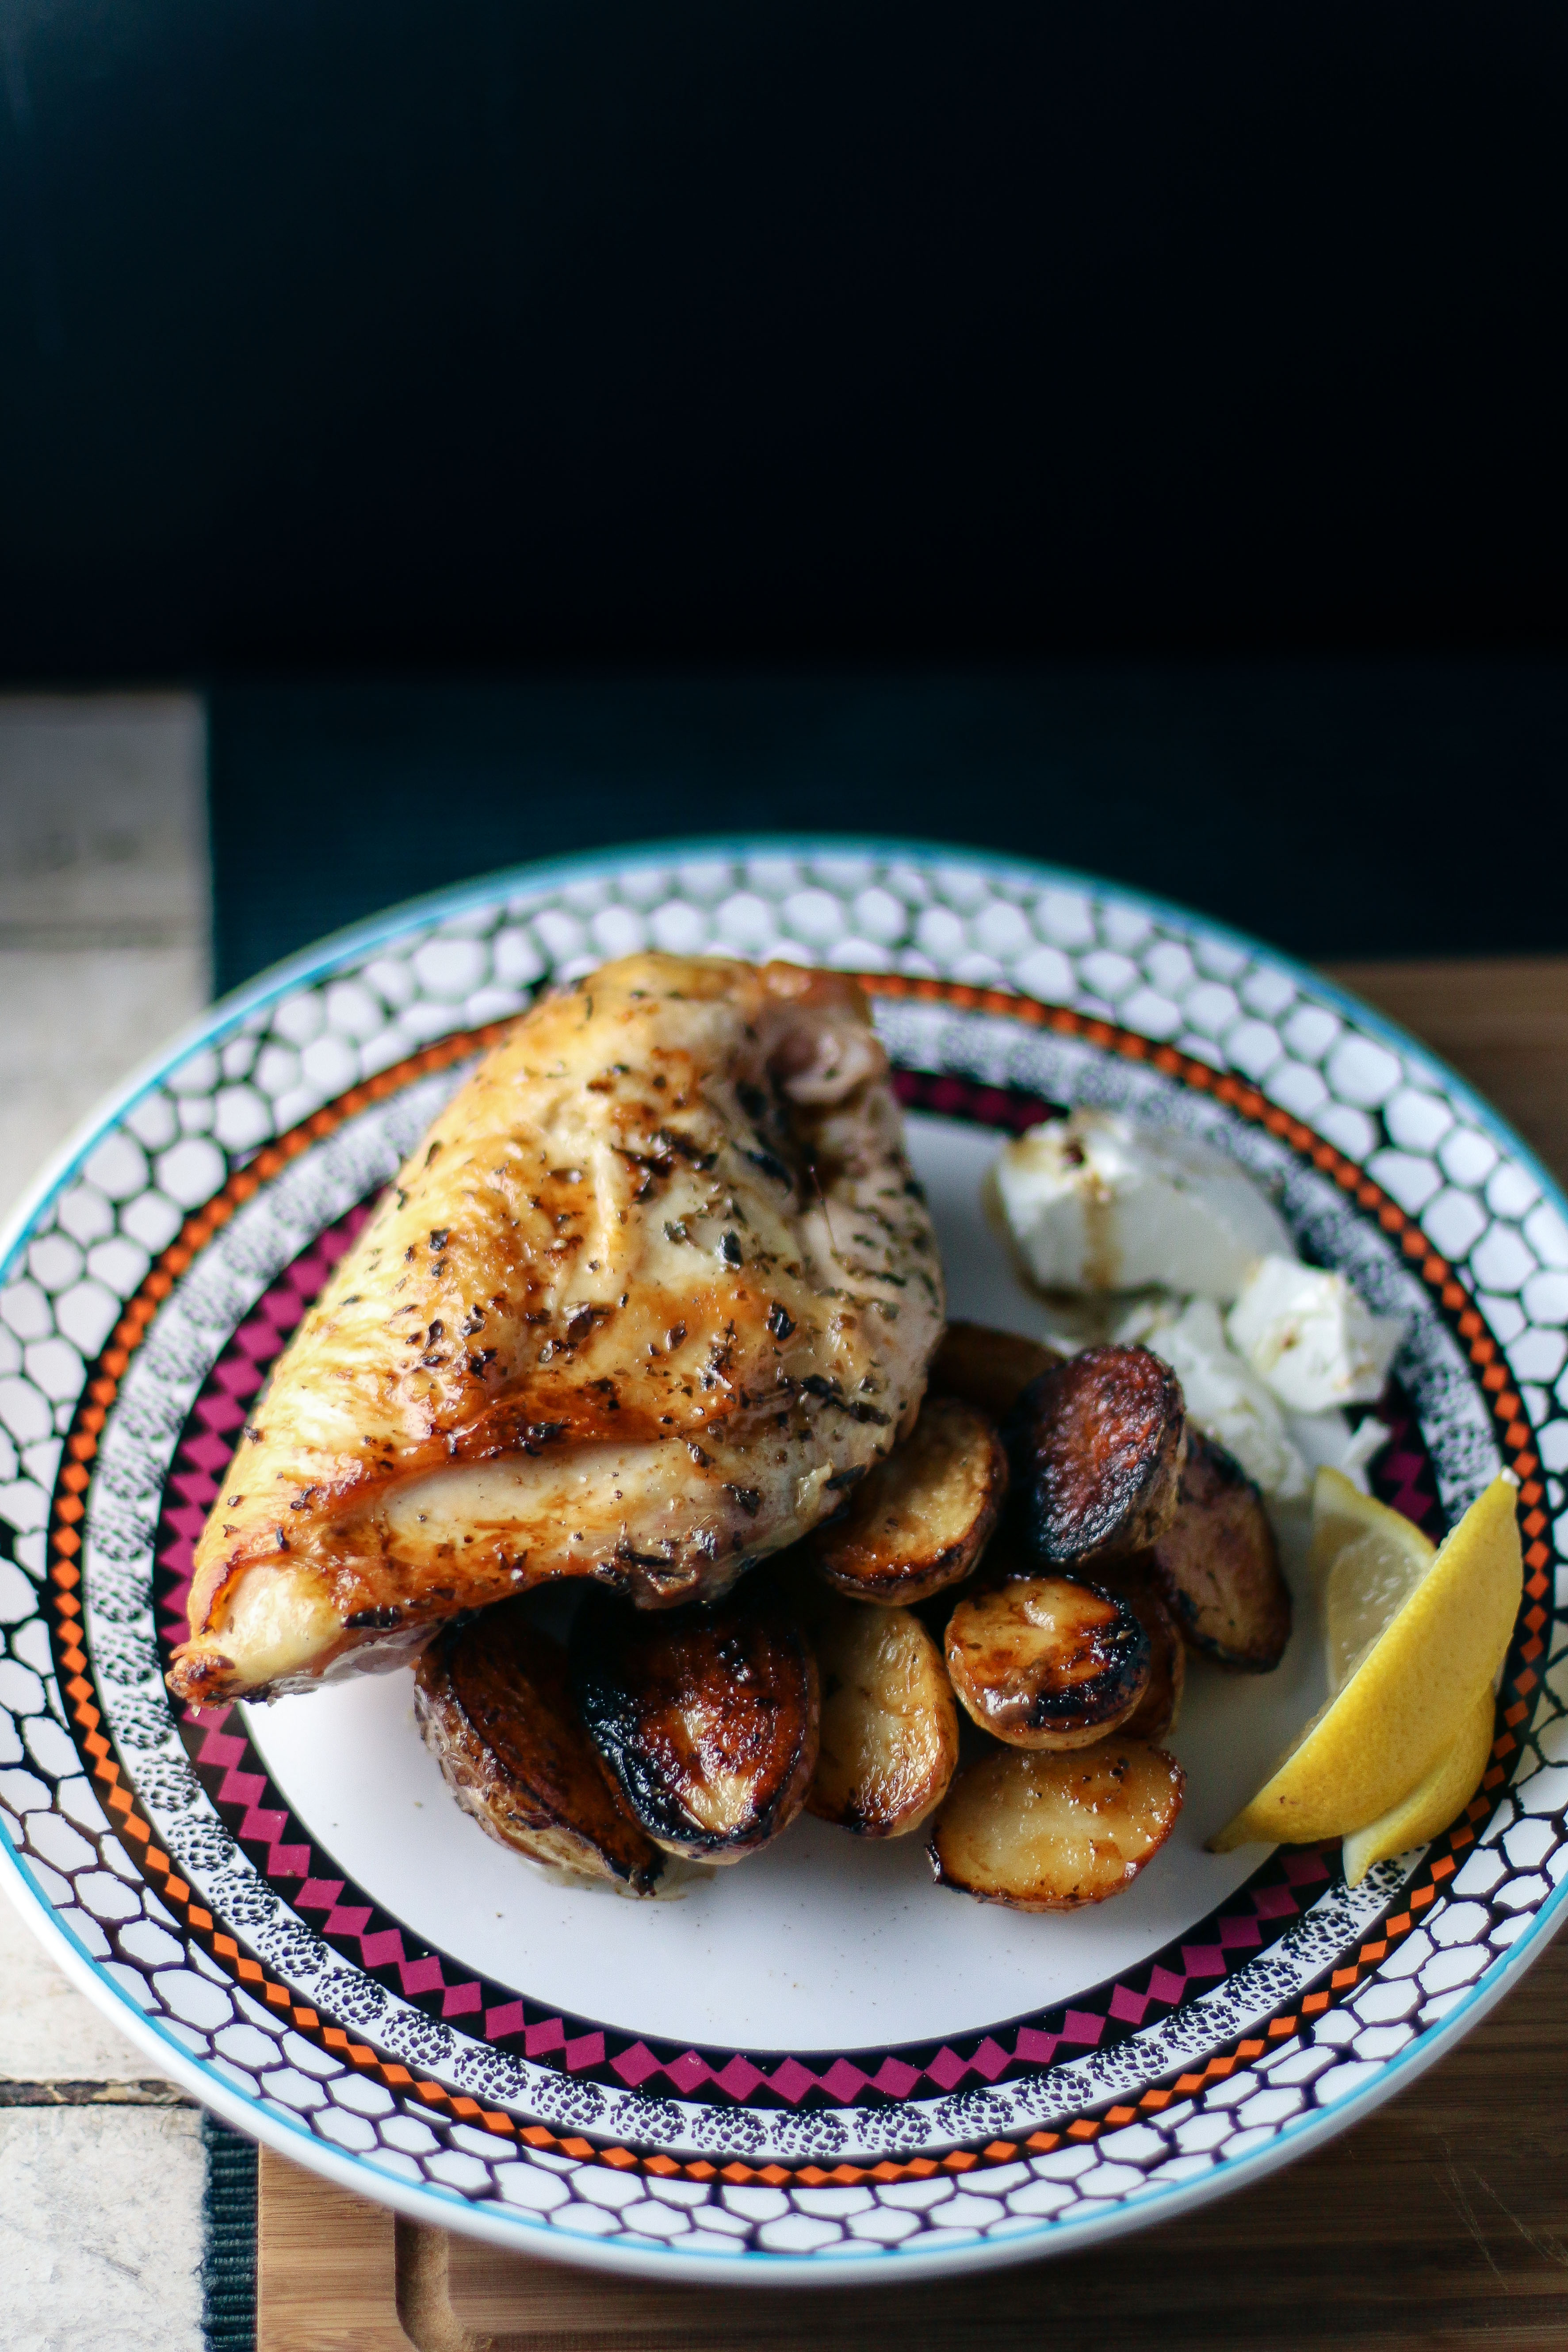 Greek Chicken & Potatoes with Feta Cheese   I Will Not Eat Oysters